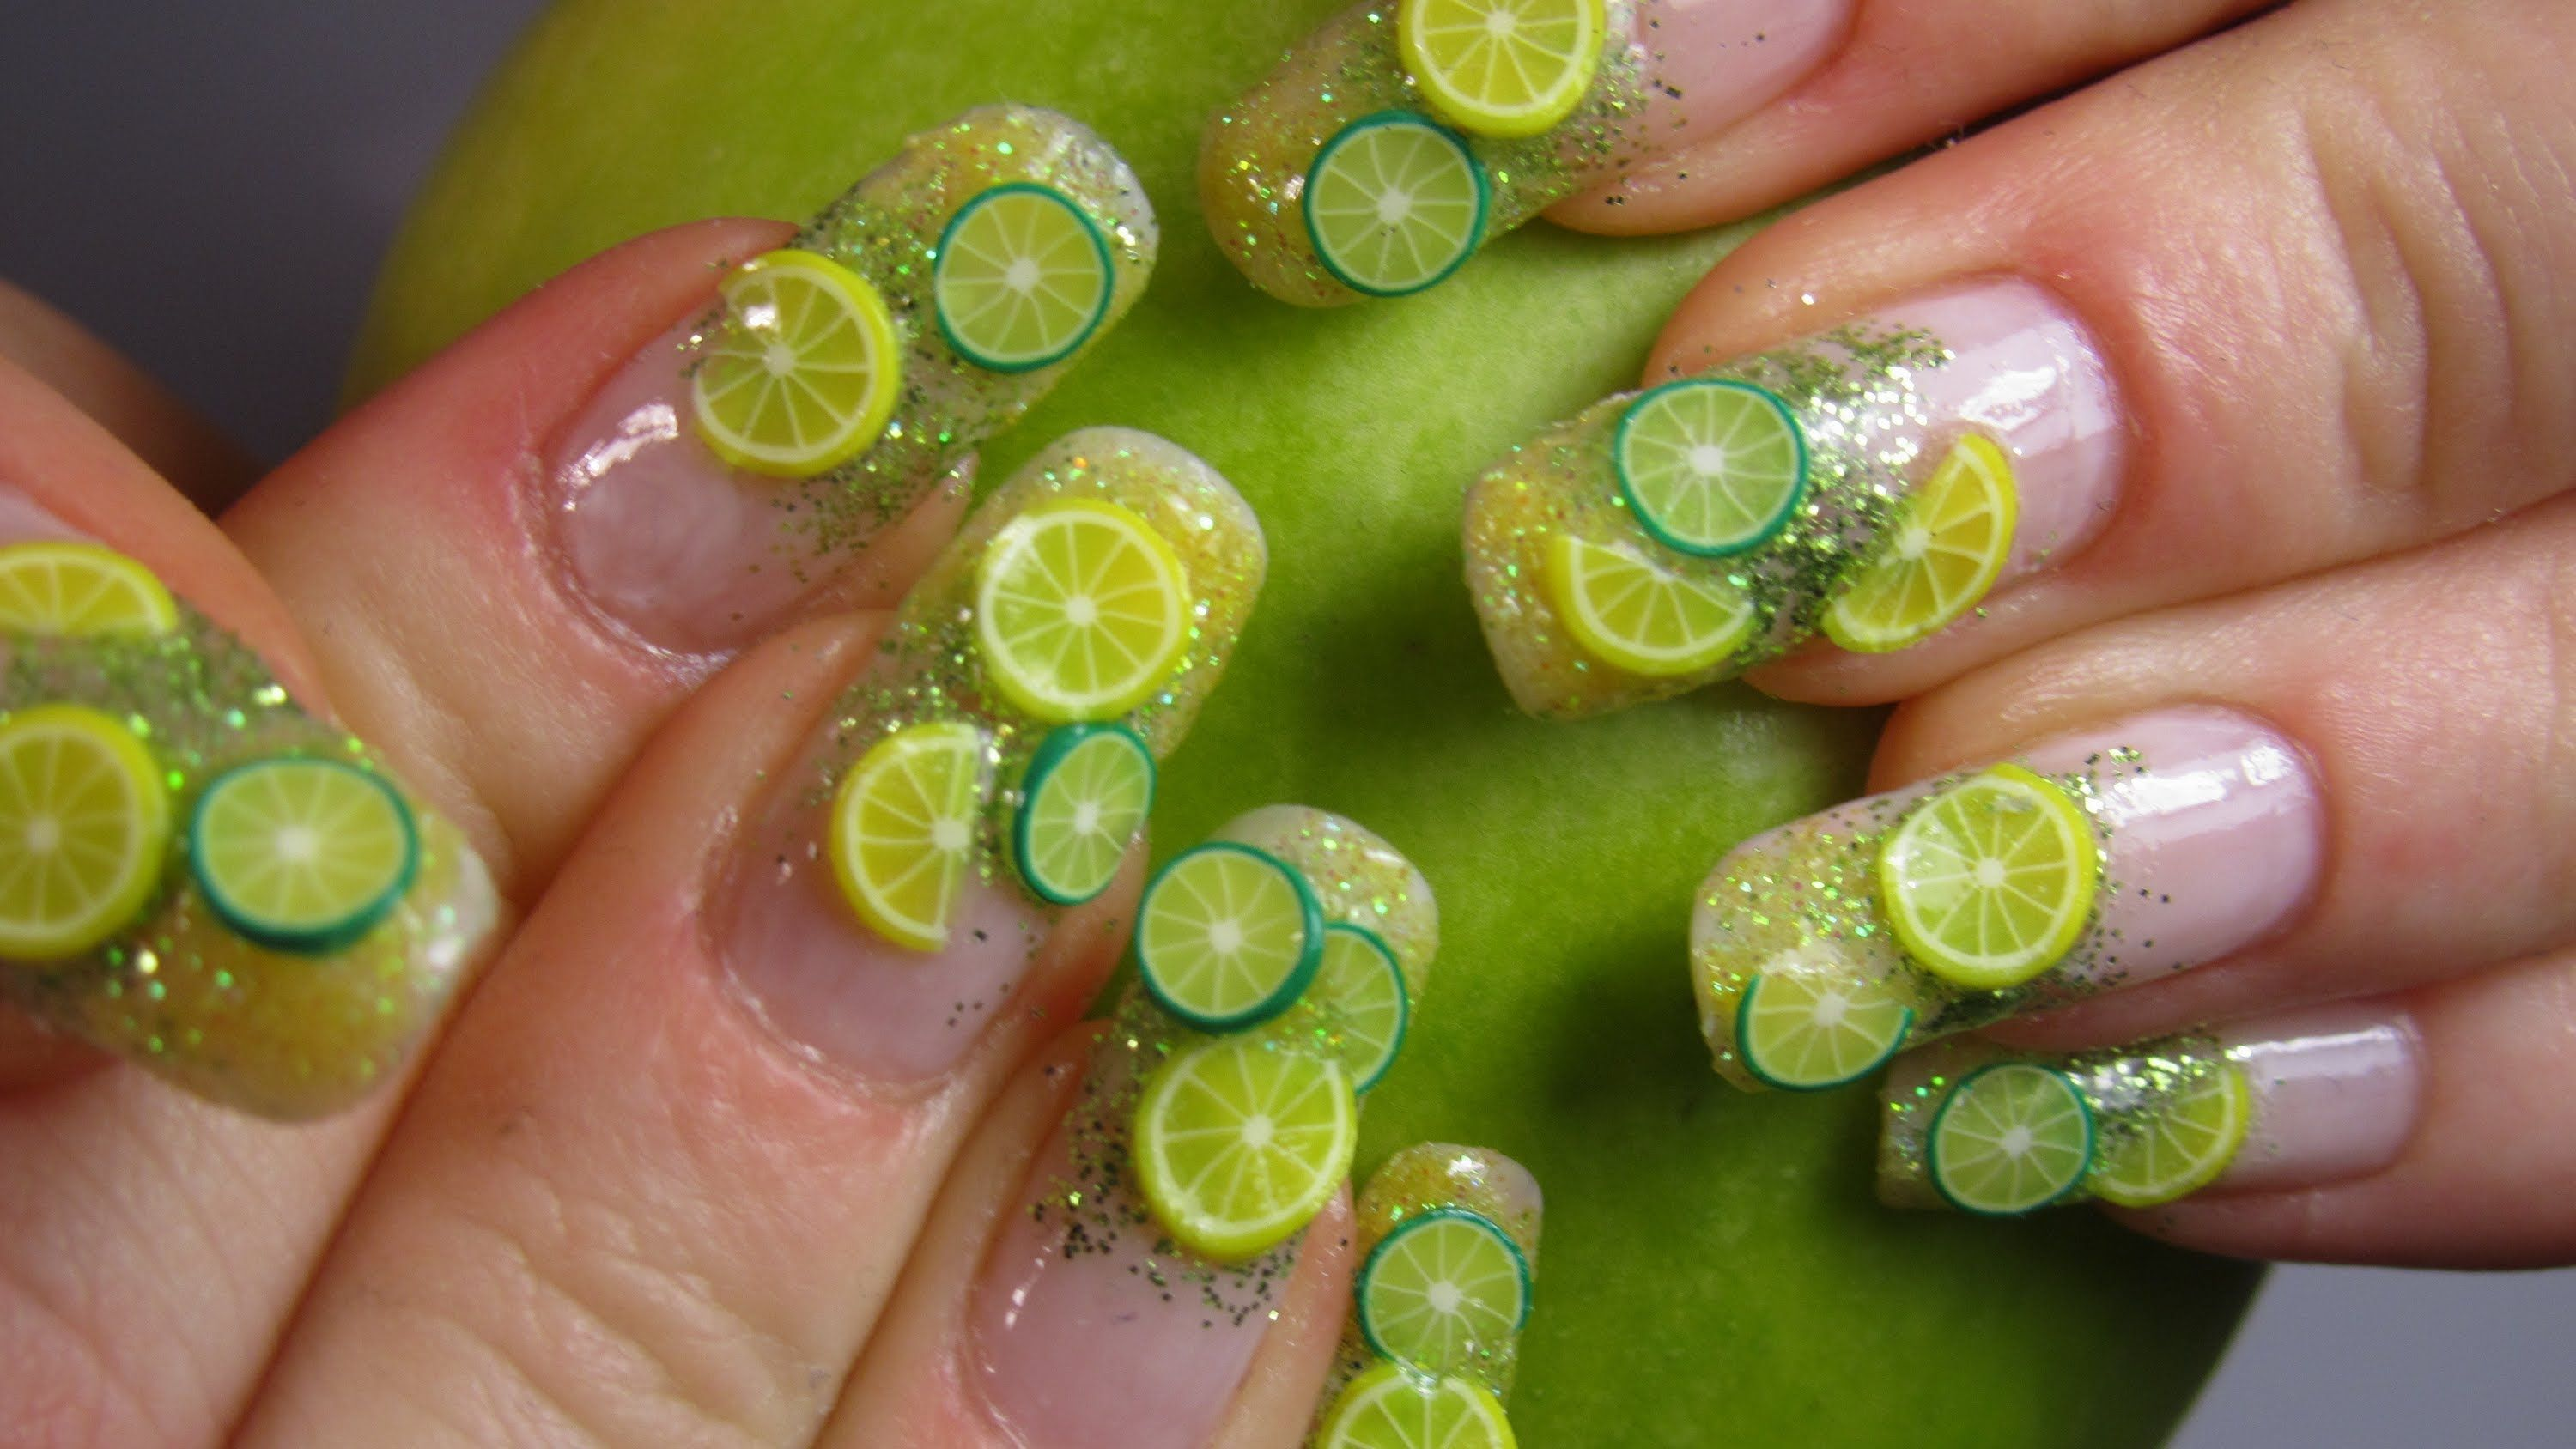 Fimo fruit lemon and lime design with gradient yellow and green ...